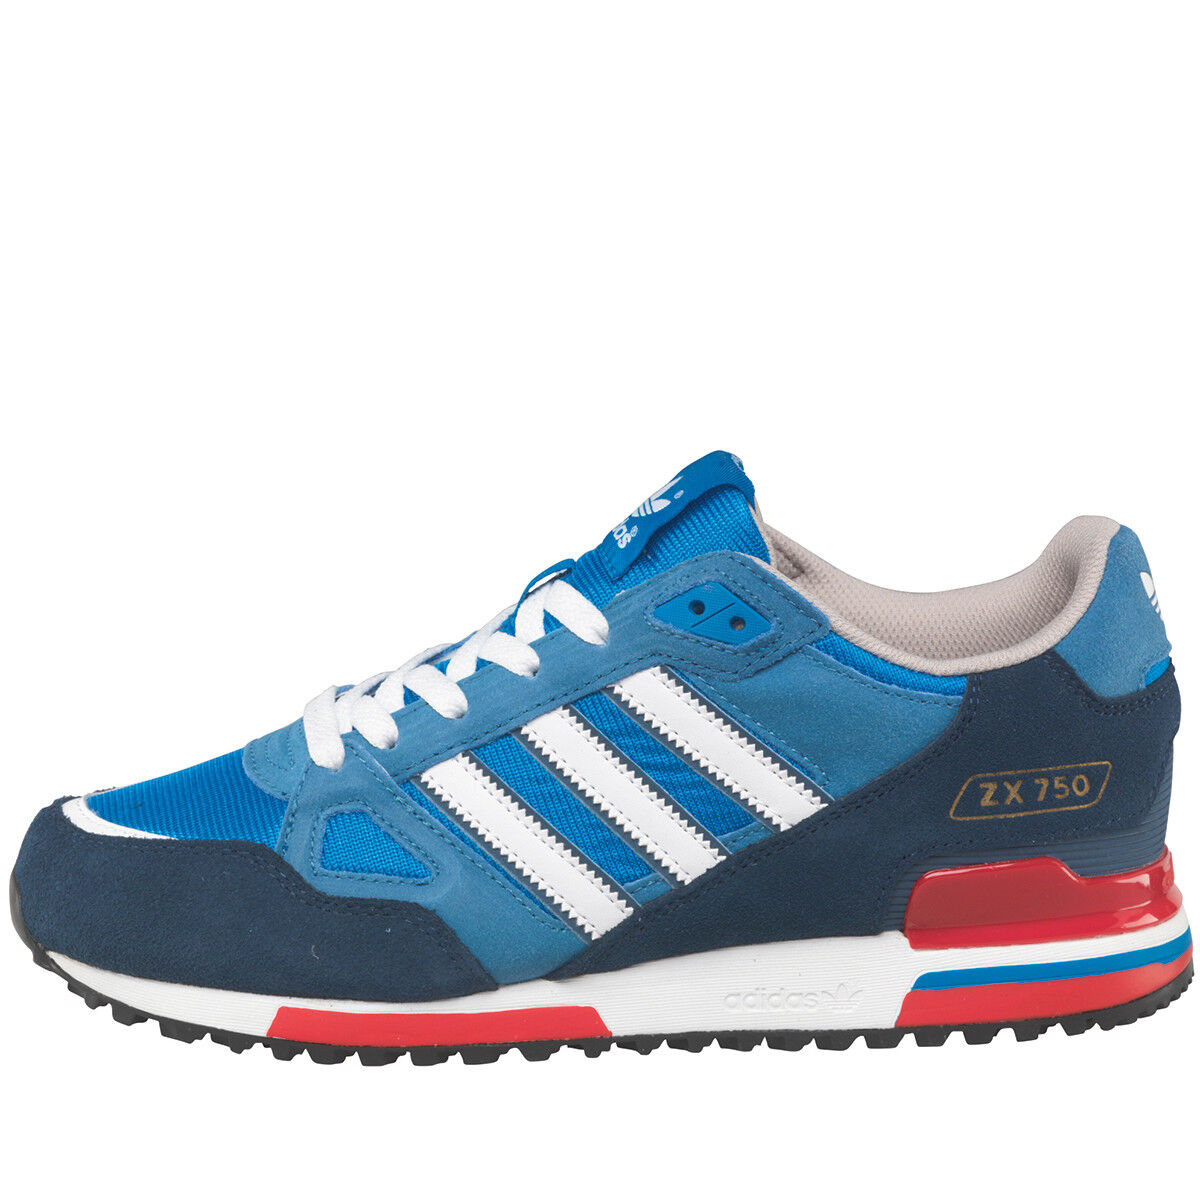 adidas Originals Mens ZX750 AQUA Trainers G96718 UK12 OG AQUA ZX750 8000 torsion eqt adv 1f2e16